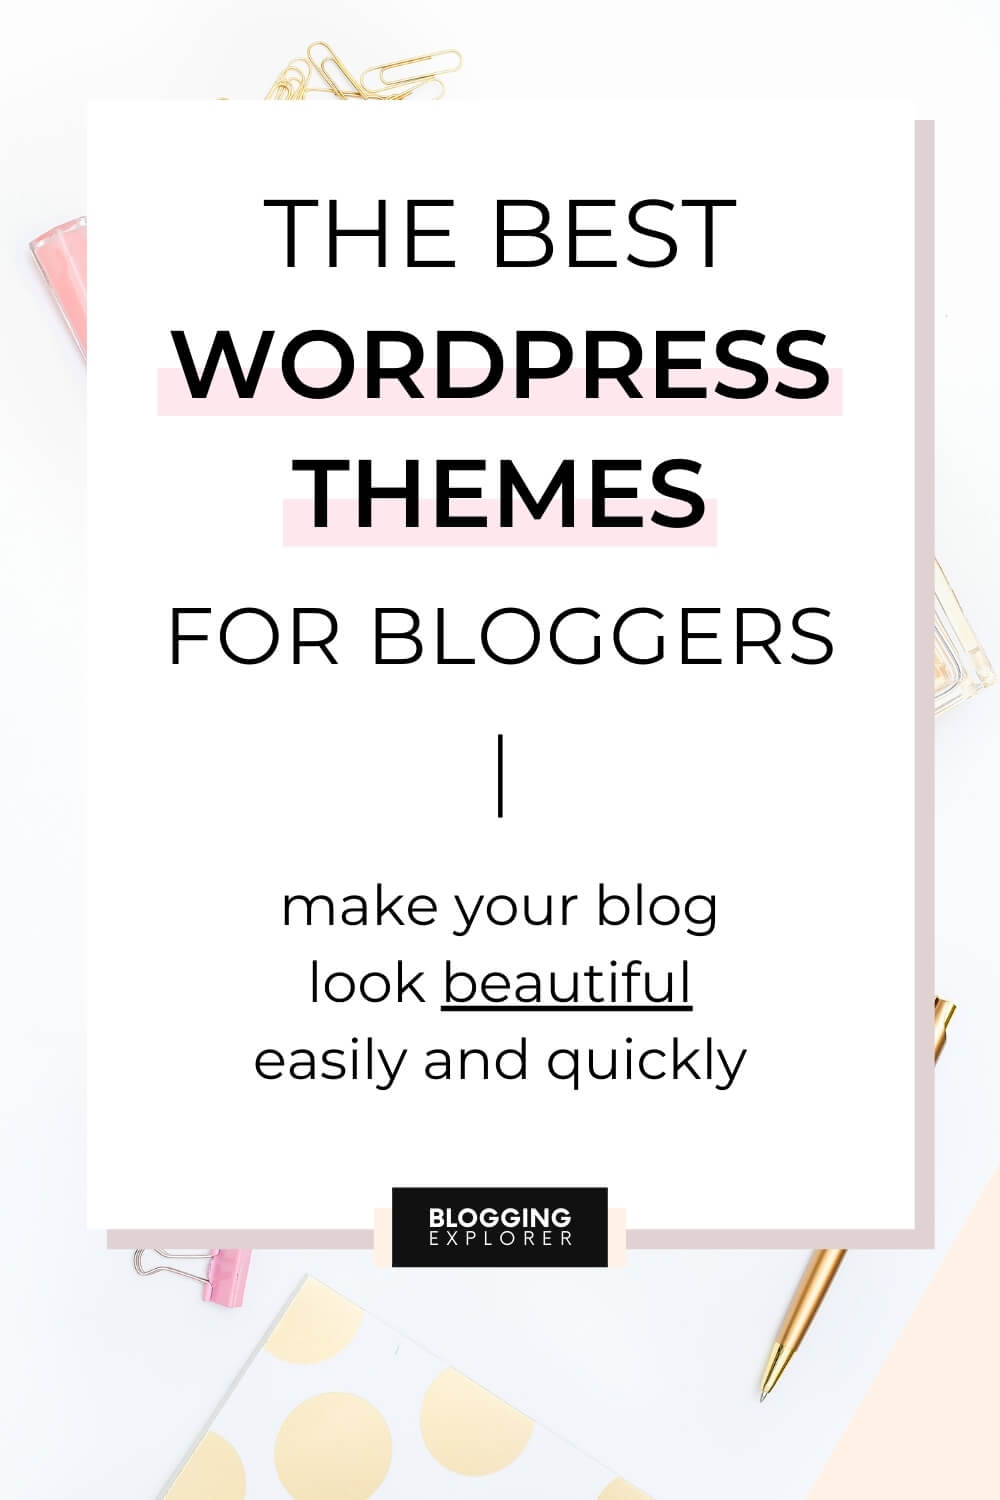 The best WordPress themes for bloggers - Blogging Explorer